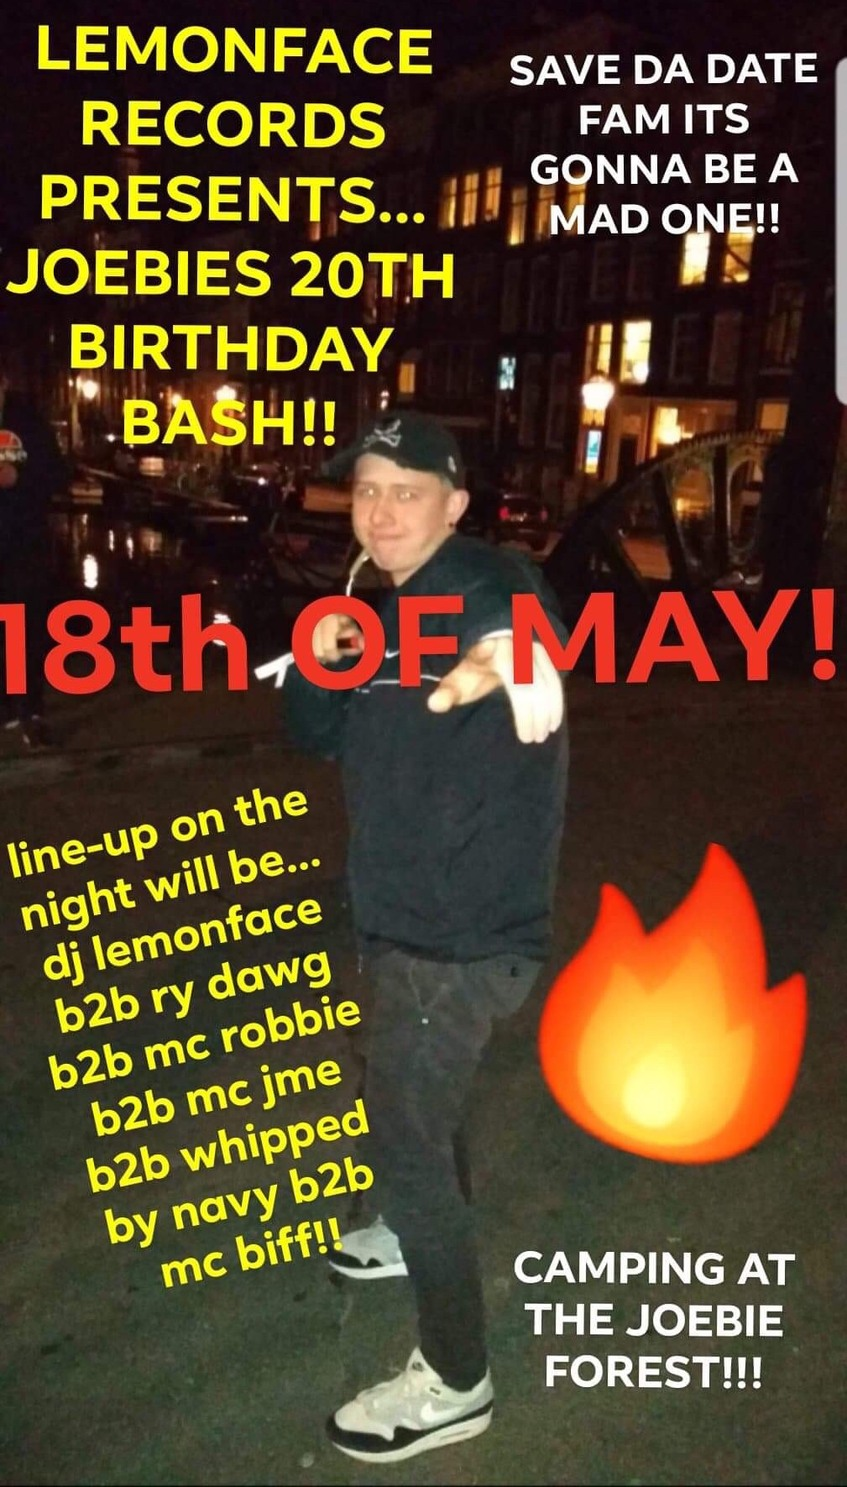 Eskimo joebies 20th b day bash - meme